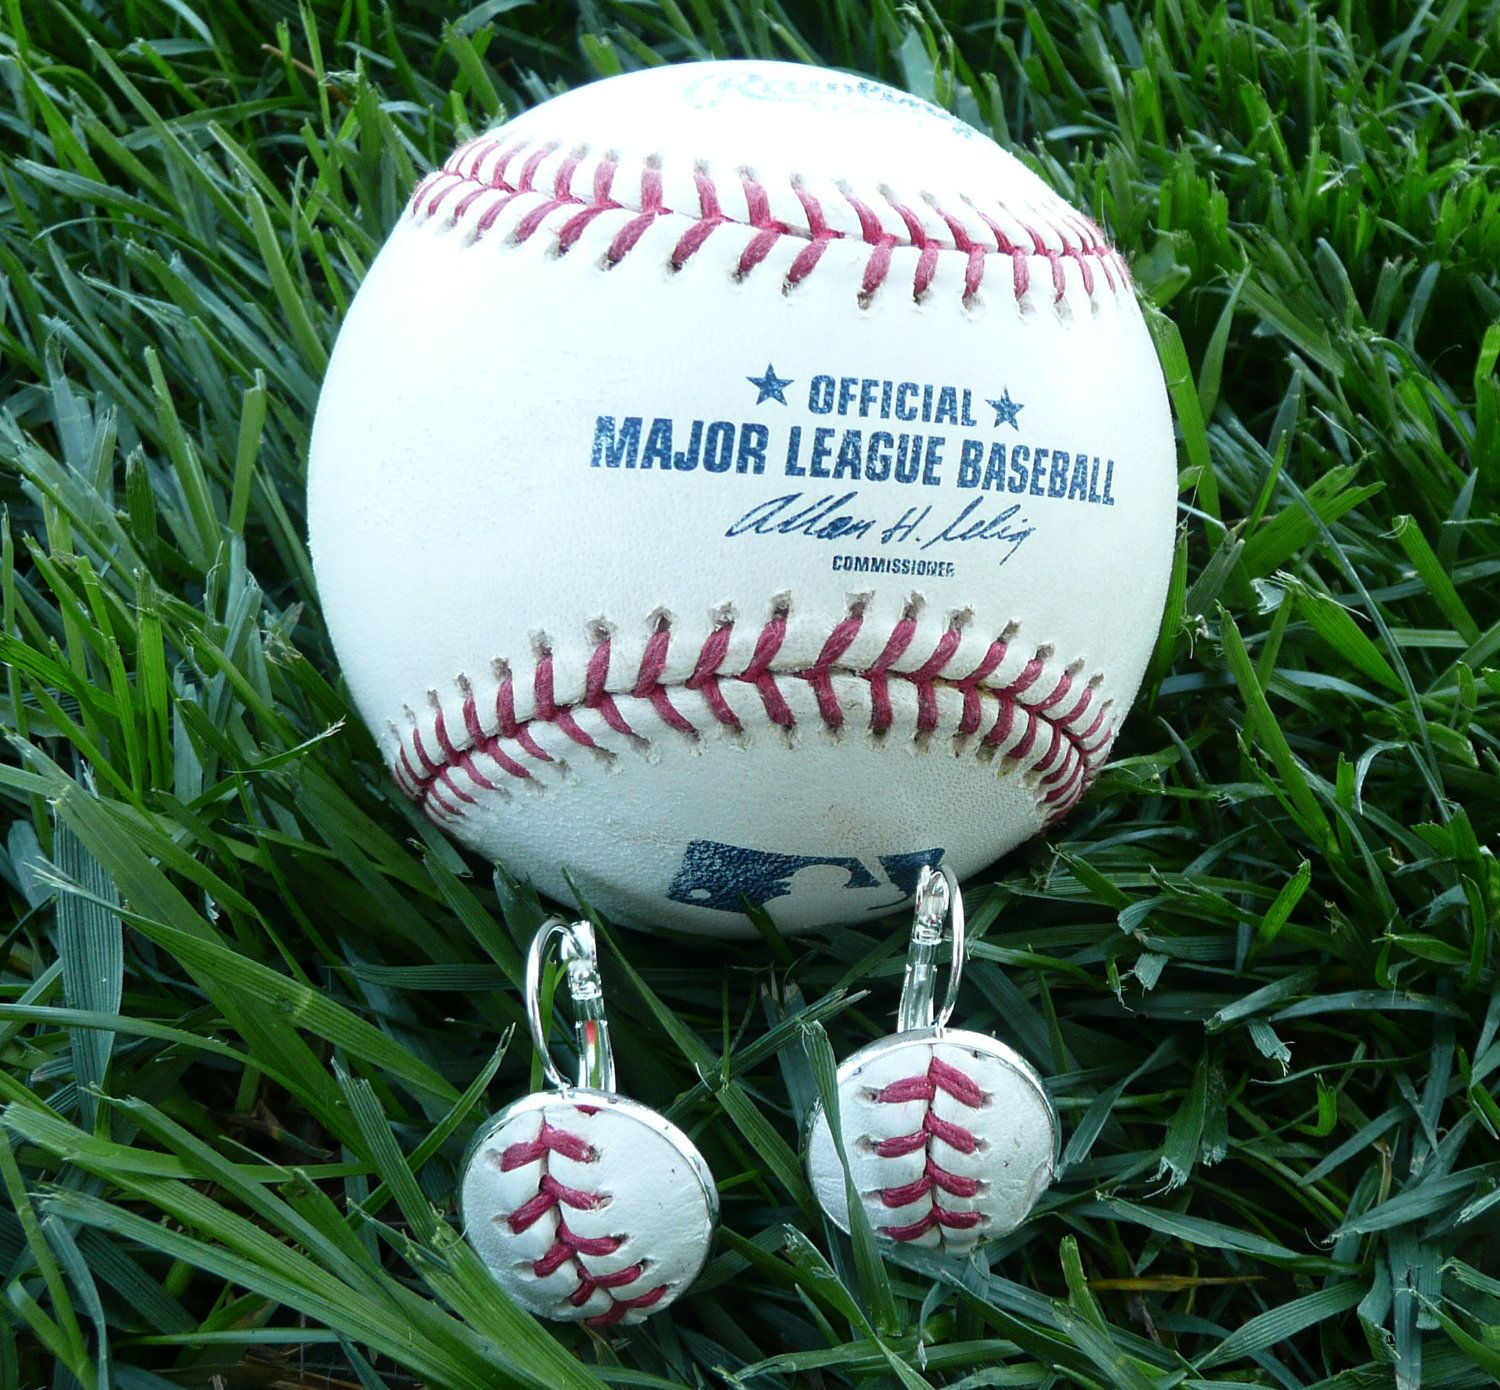 Cincinnati Reds Game Used Authentic Mlb Baseball Earrings Baseball Earrings Mlb Baseball Baseball Game Outfits